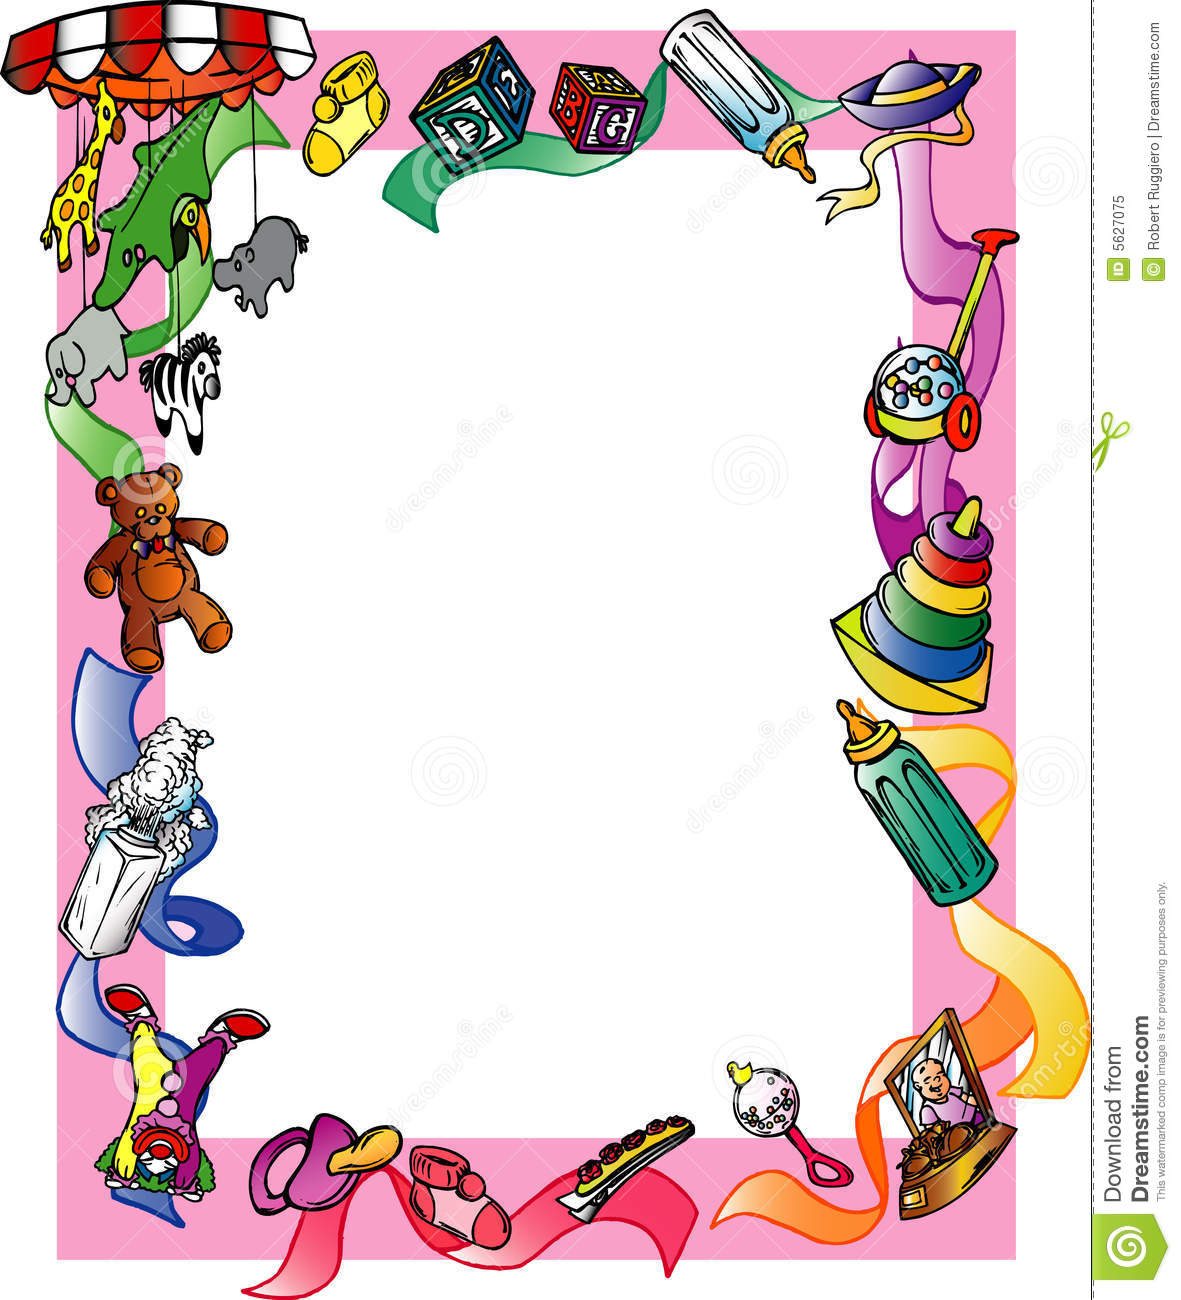 Kids Border Clipart Panda Free Clipart Images